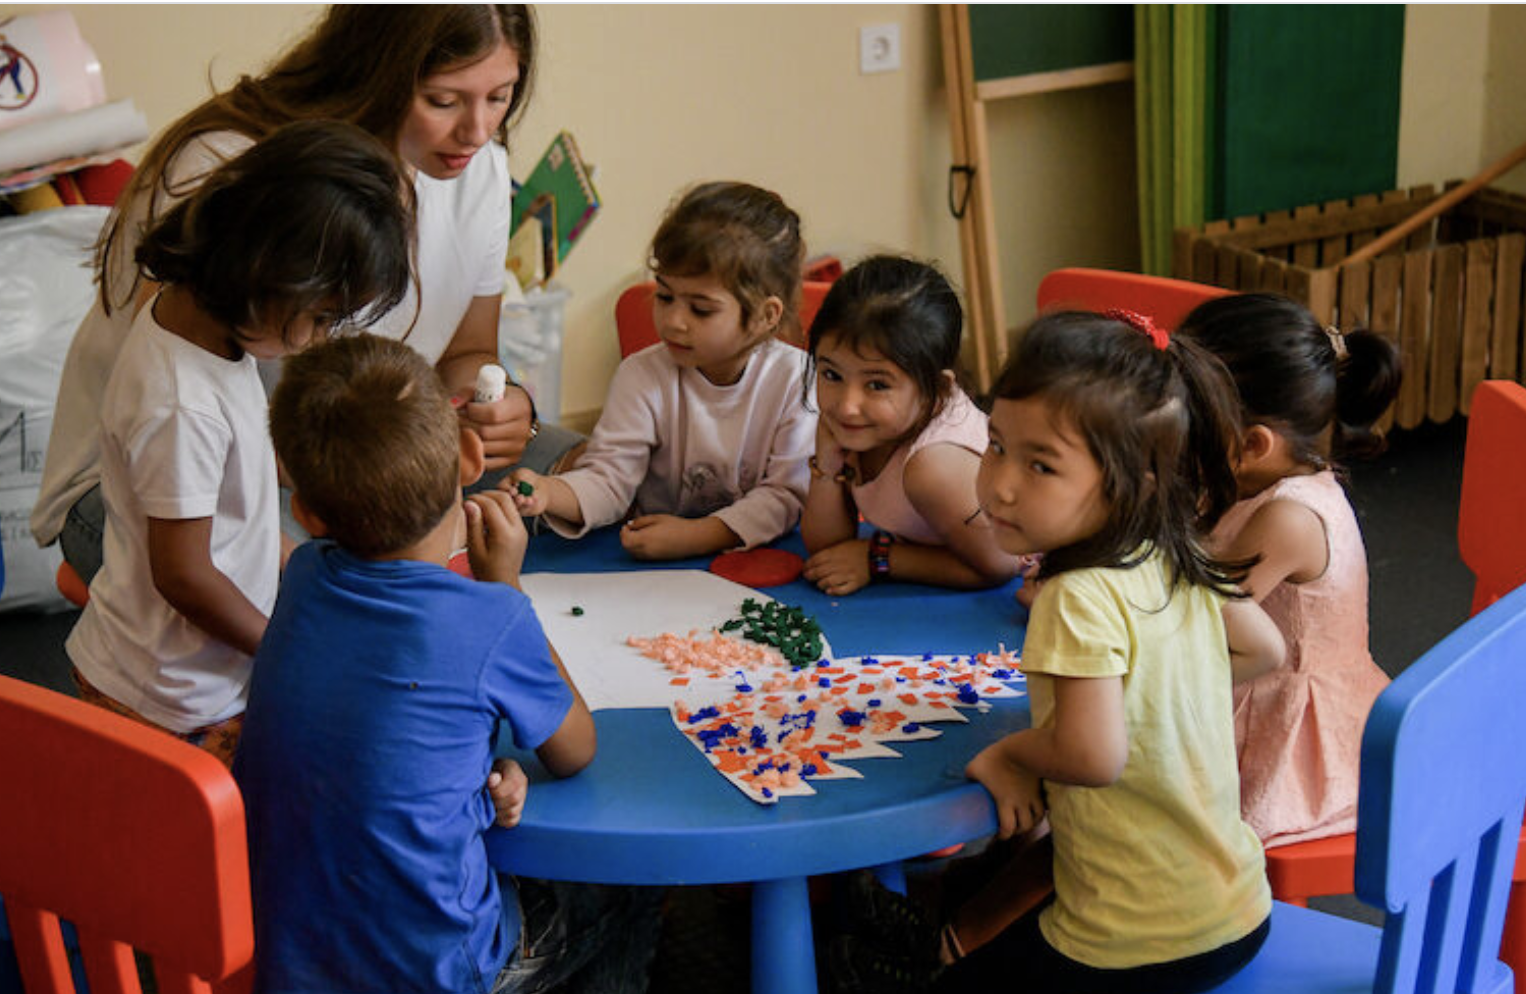 Theirworld's blueprint adopted by Greek government to give education and hope to child refugees